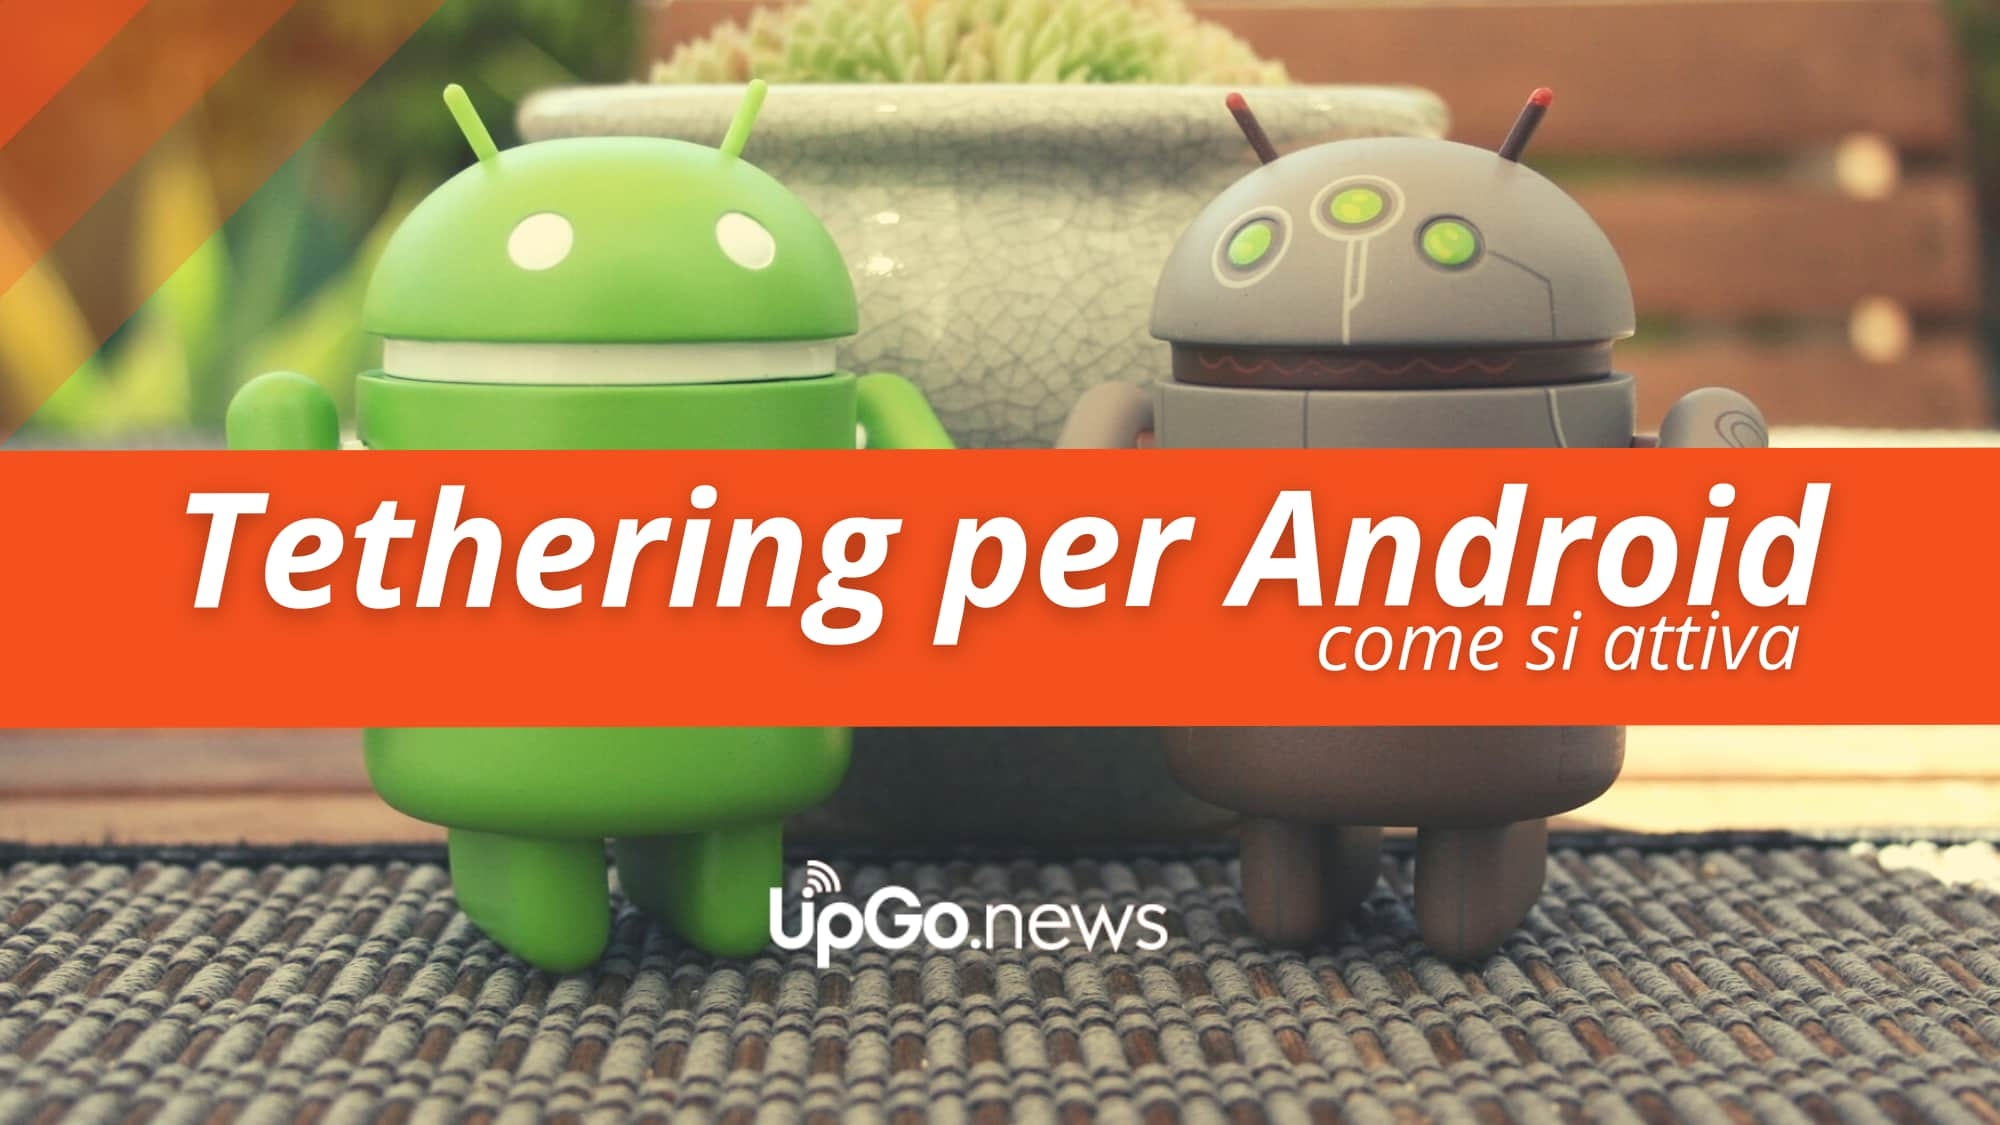 Tethering per Android